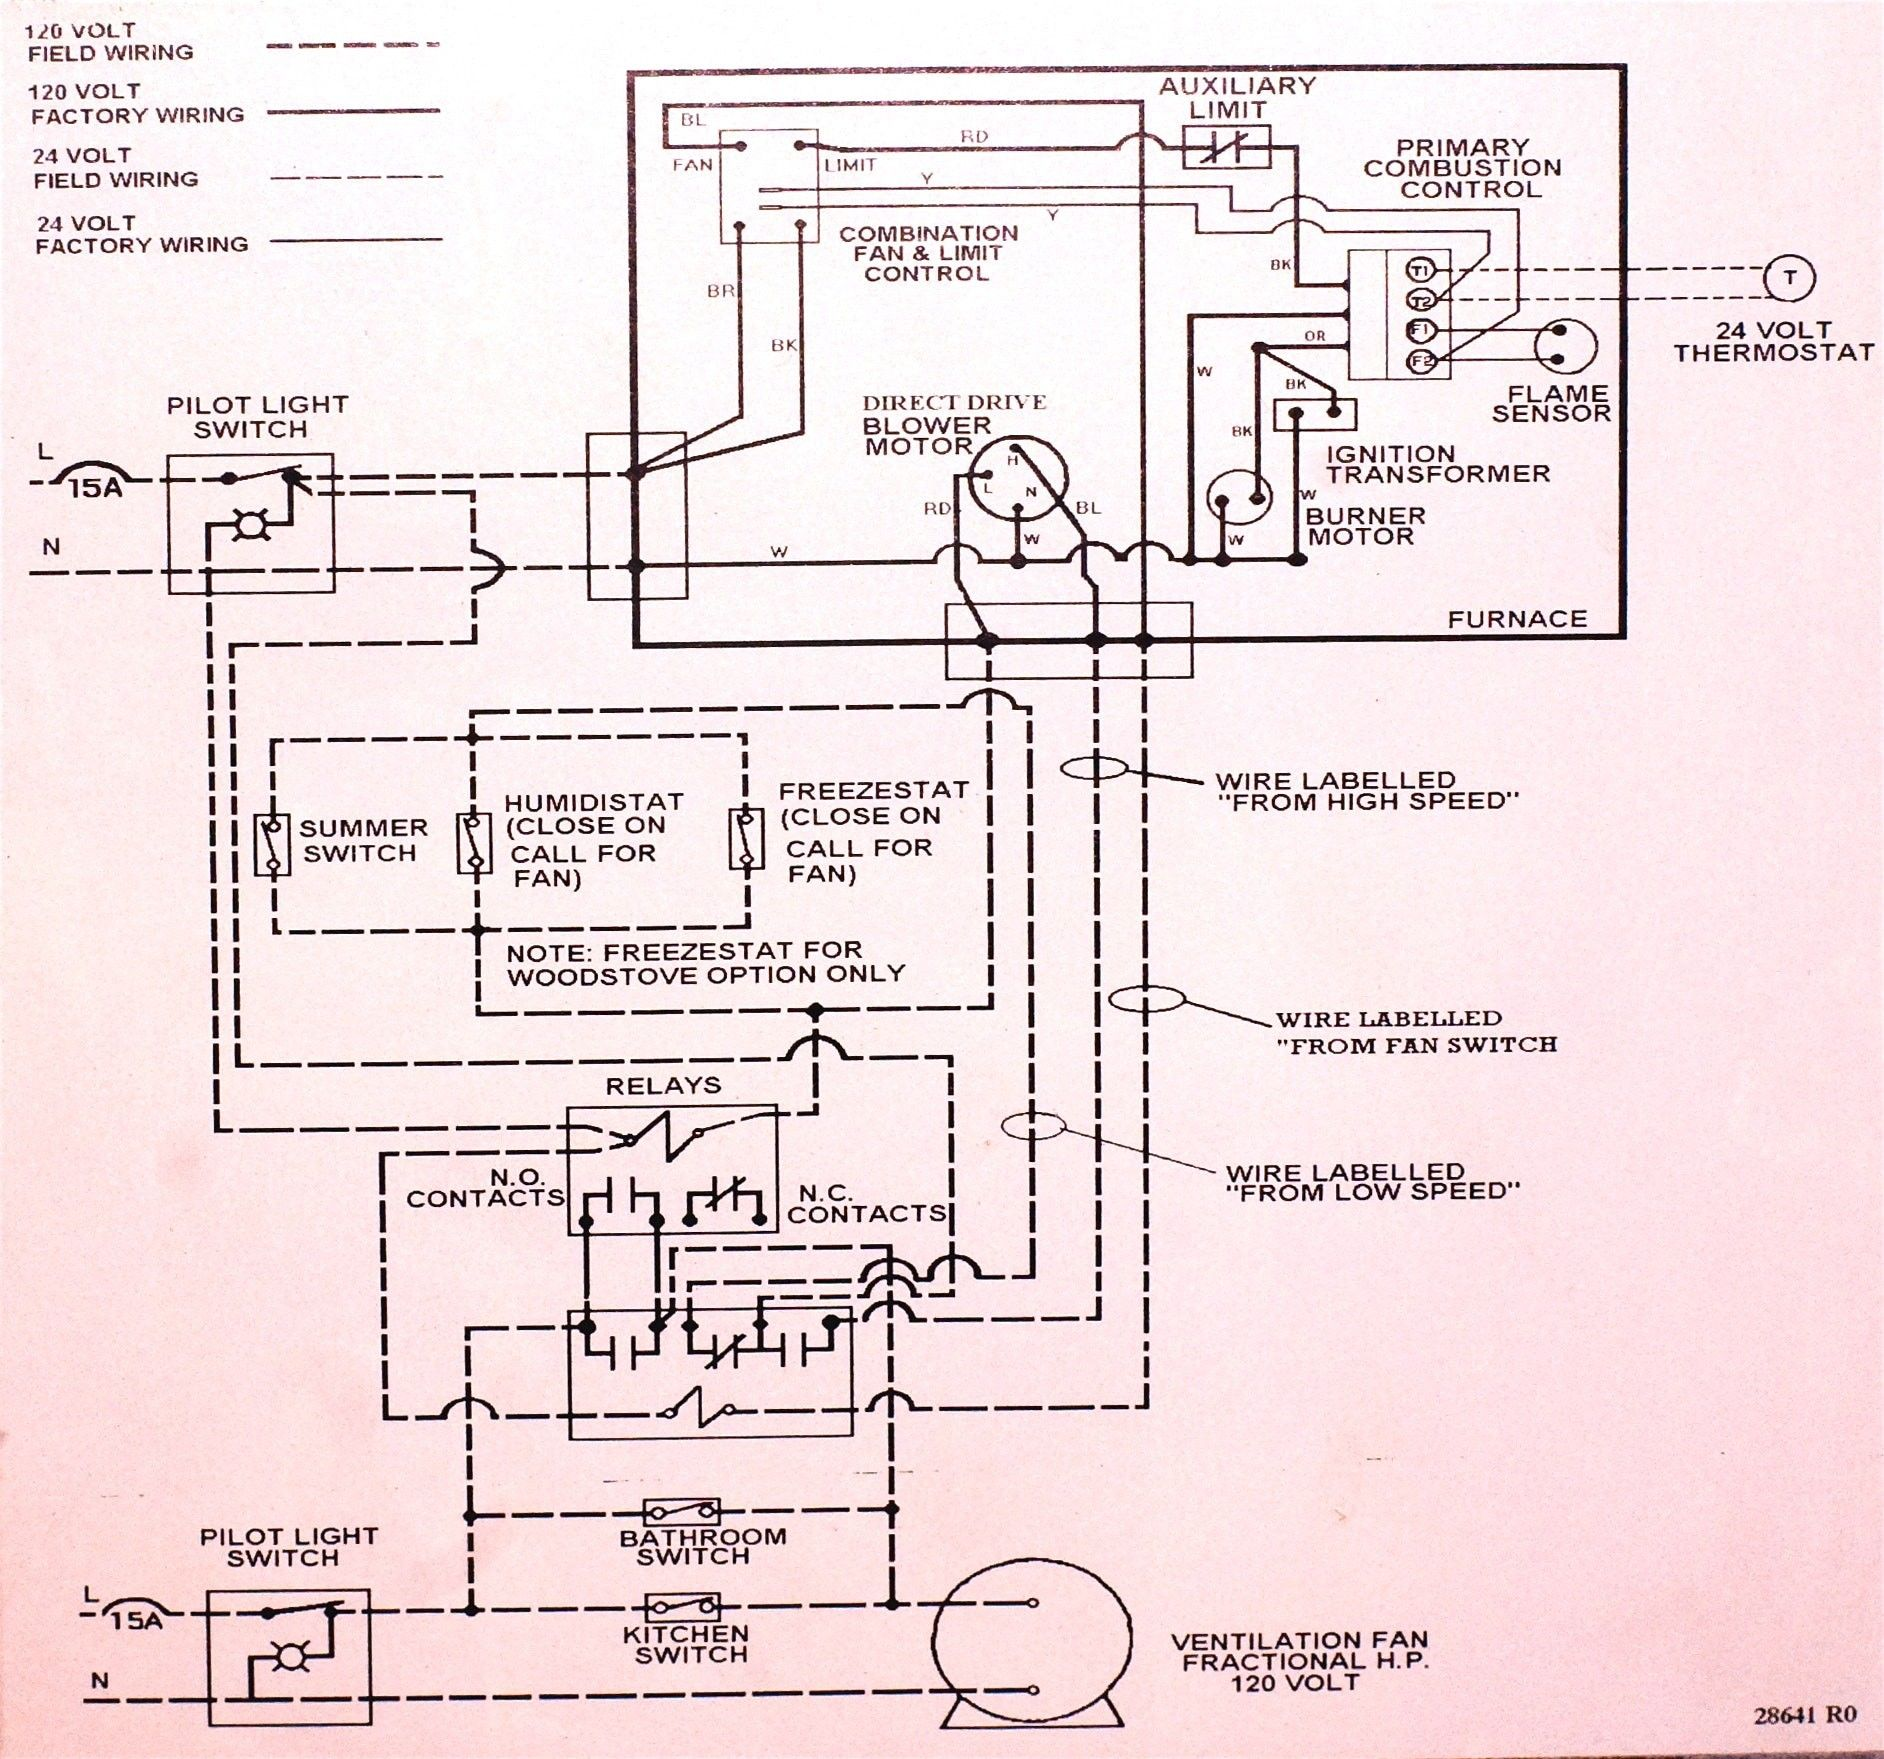 Unique Payne Gas Furnace Wiring Diagram Diagram Diagramsample Diagramtemplate Wiringdiagram Diagramchart Worksheet Gas Furnace Electric Furnace Furnace